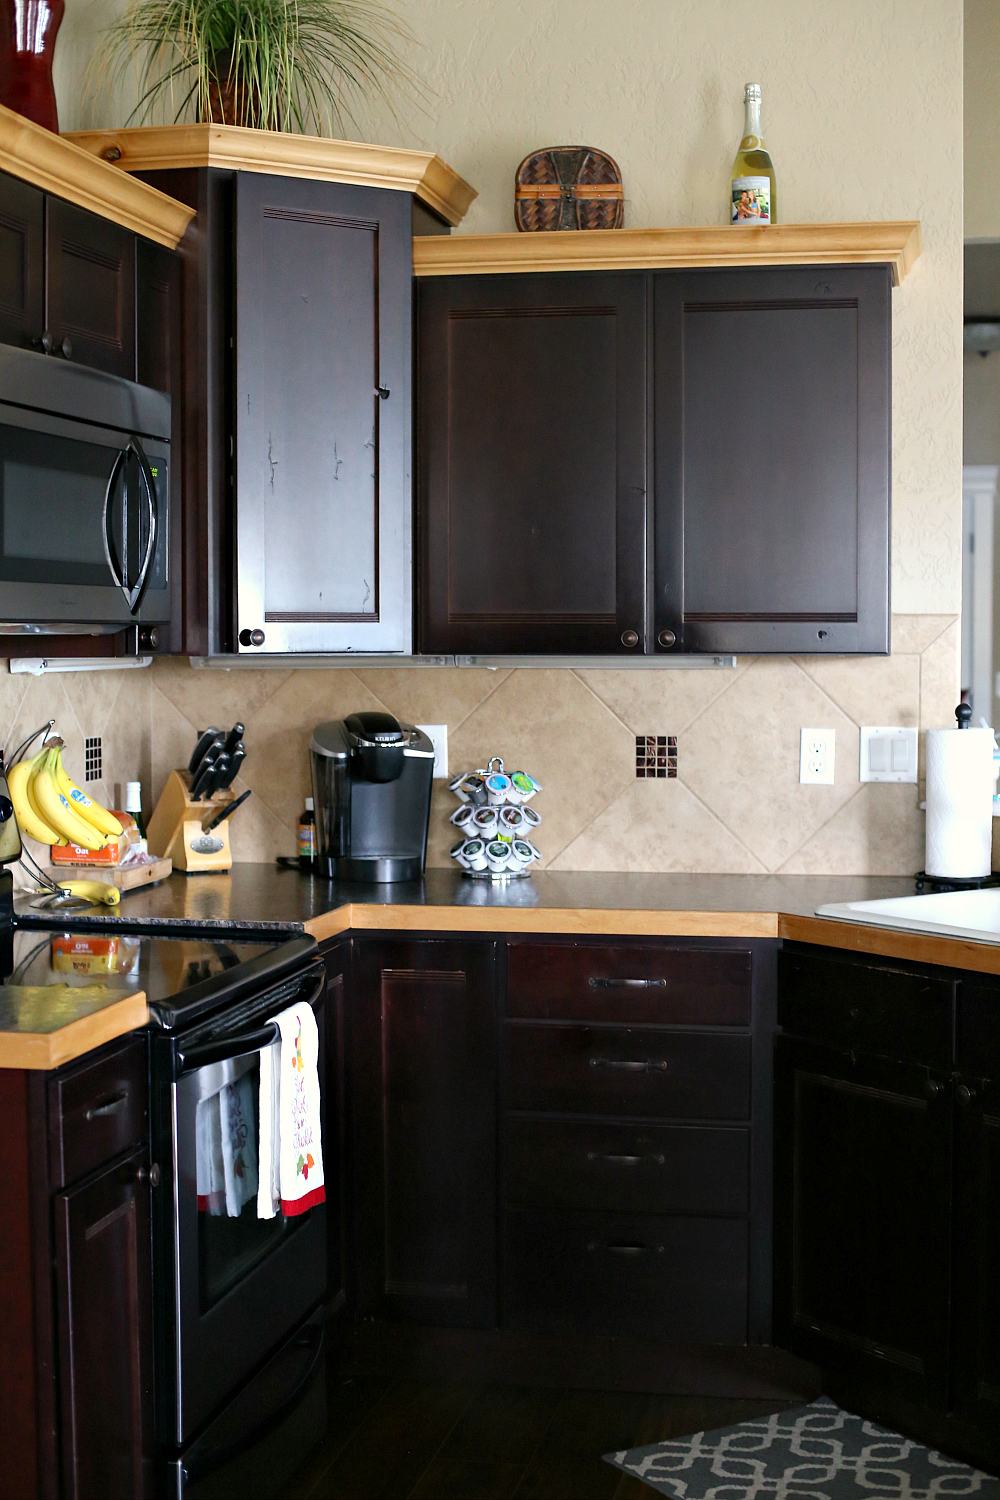 Build Your Dream Kitchen On A Budget With Sears Home Services Kitchen On A Budget Budget Kitchen Remodel Kitchen Remodel Layout